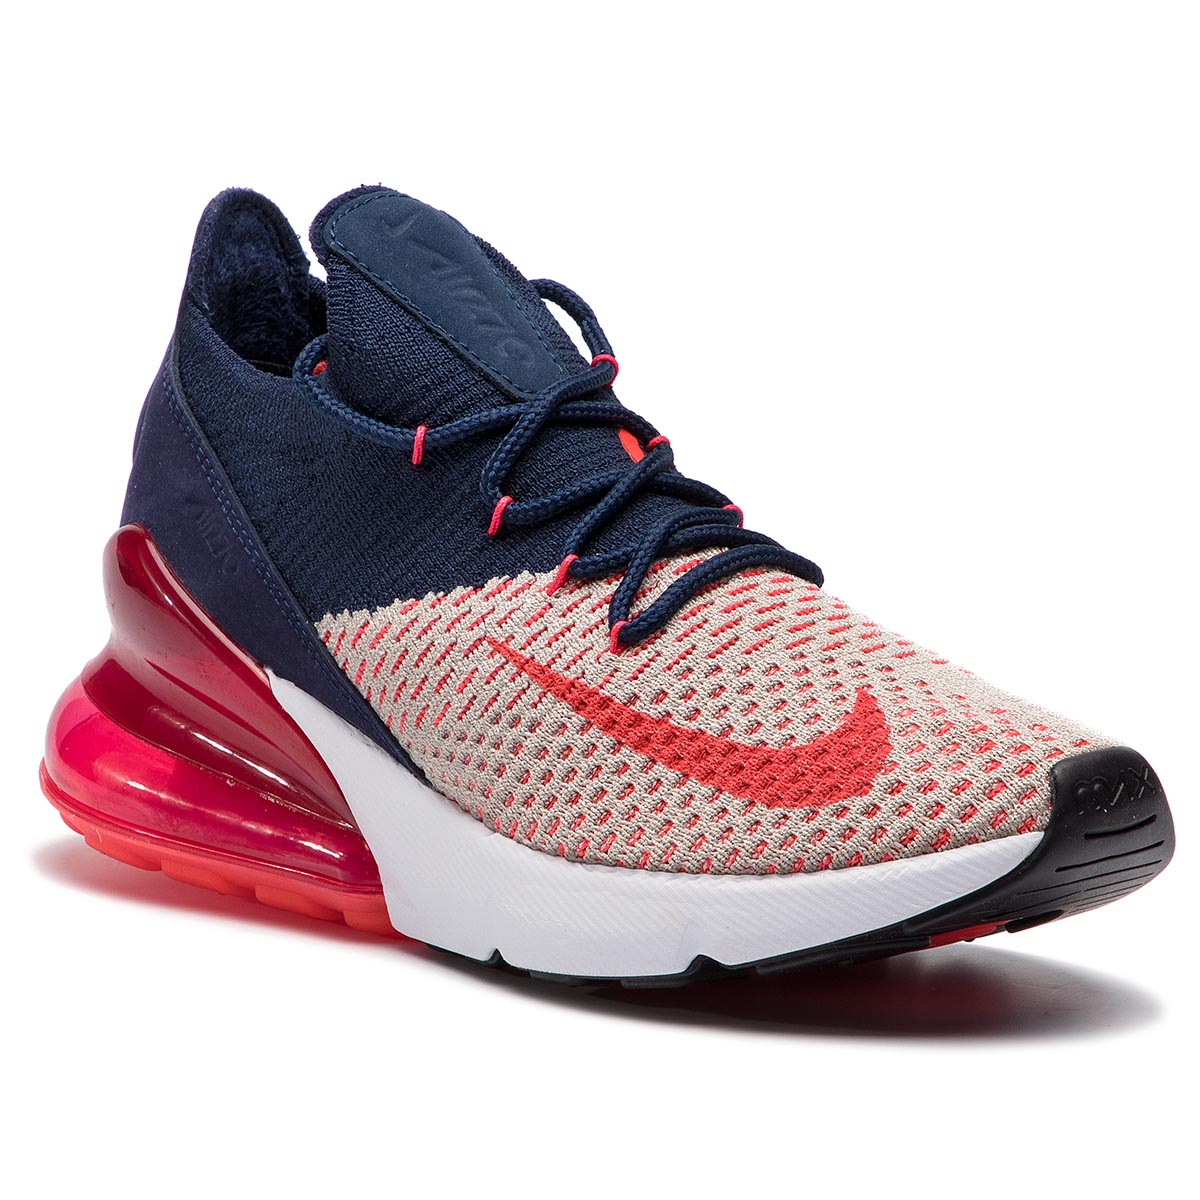 Cipő NIKE - Air Max 270 Flyknit AH6803 200 Moon Particle Red Orbit ... f51ba83f77